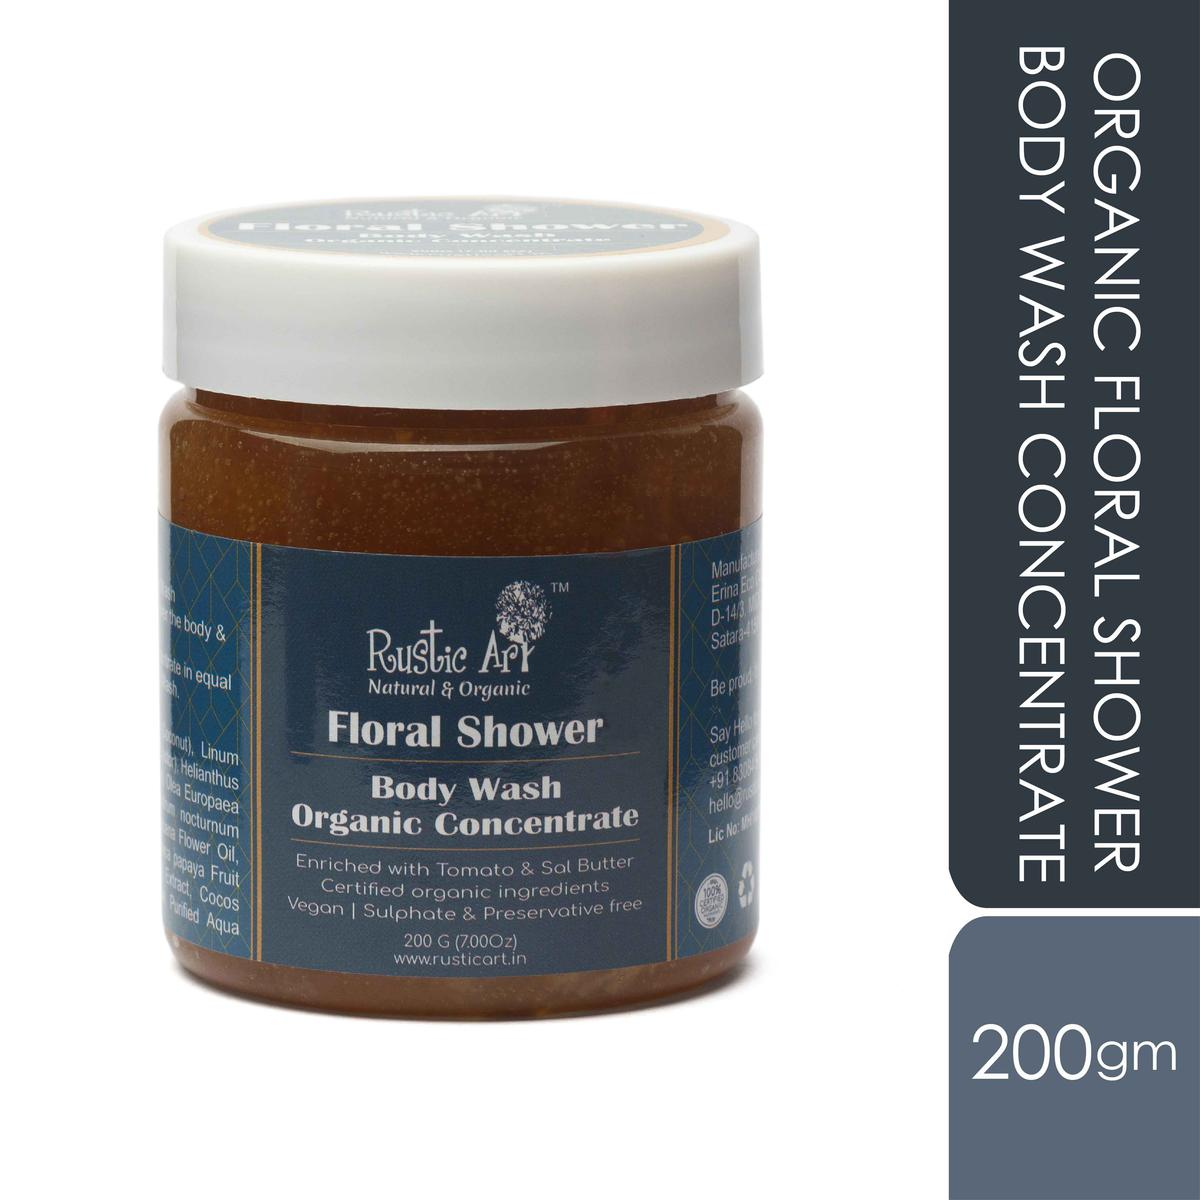 Rustic Art Organic Floral Shower Body Wash Concentrate - 200g